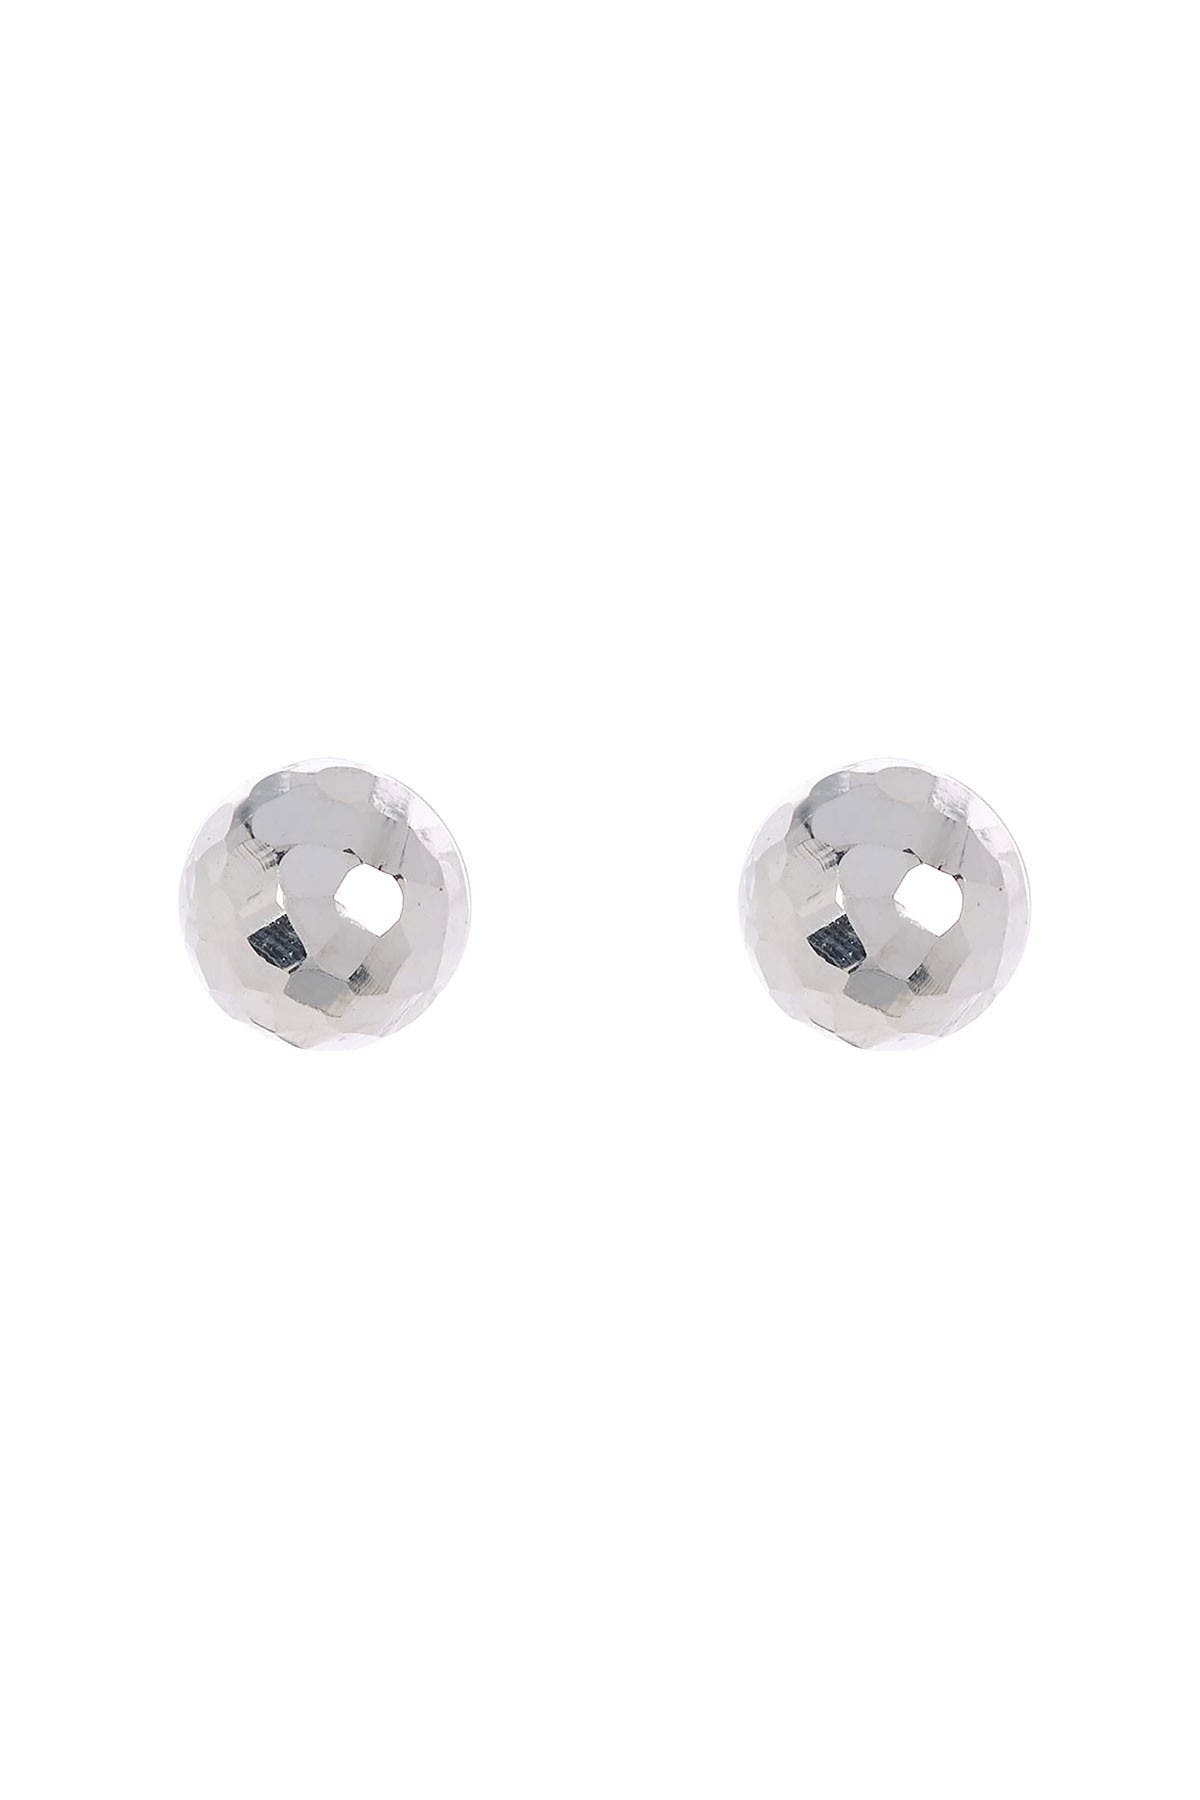 Image of Bony Levy 14K White Gold Textured Dome Stud Earrings